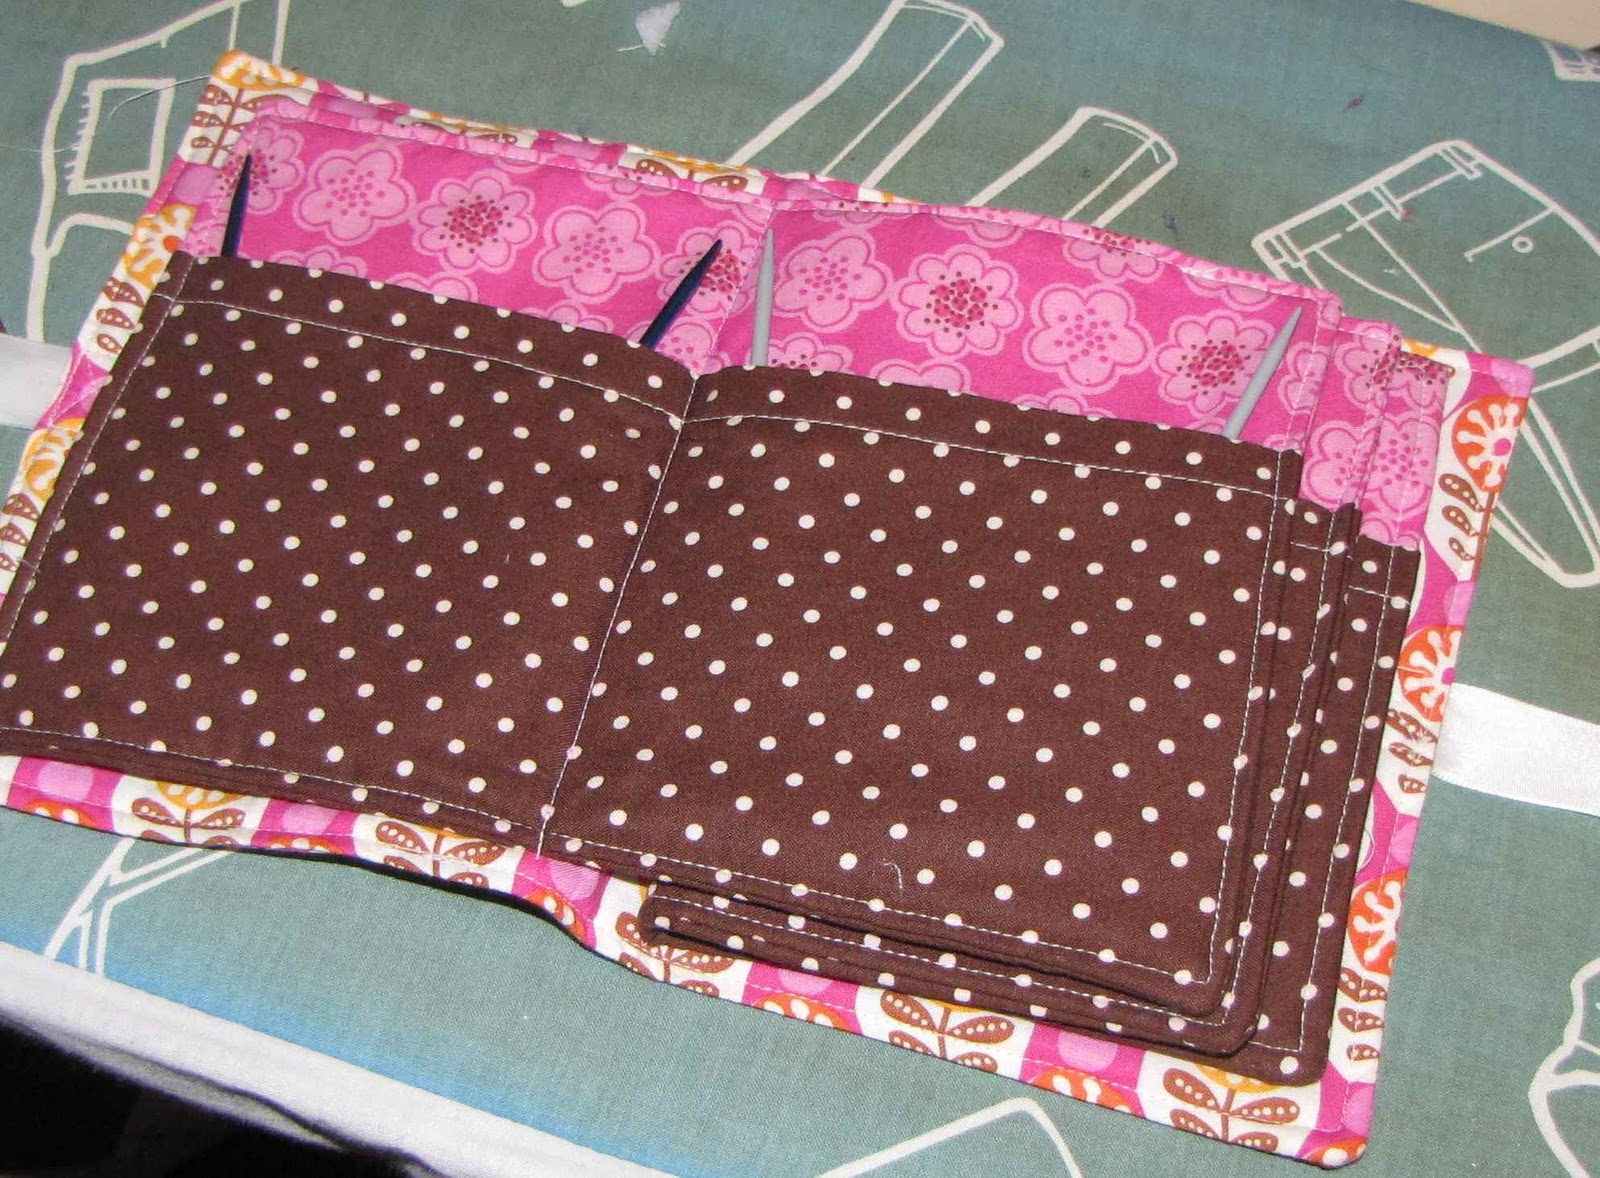 Knitting Needle Storage Case Pattern : Apple dumpling gear circular knitting needle holder tutorial